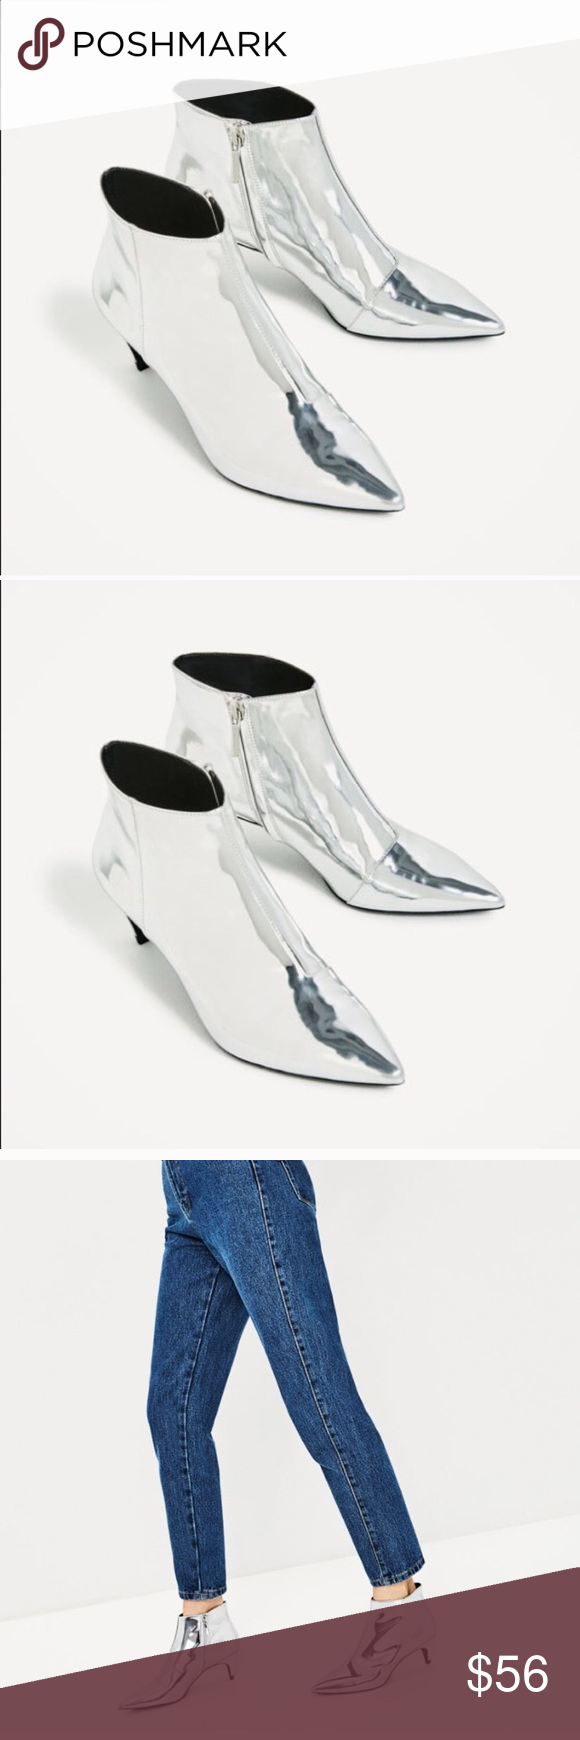 480ce5388d7 ❄️ZARA silver ankle boot -NWT NWT in 2018